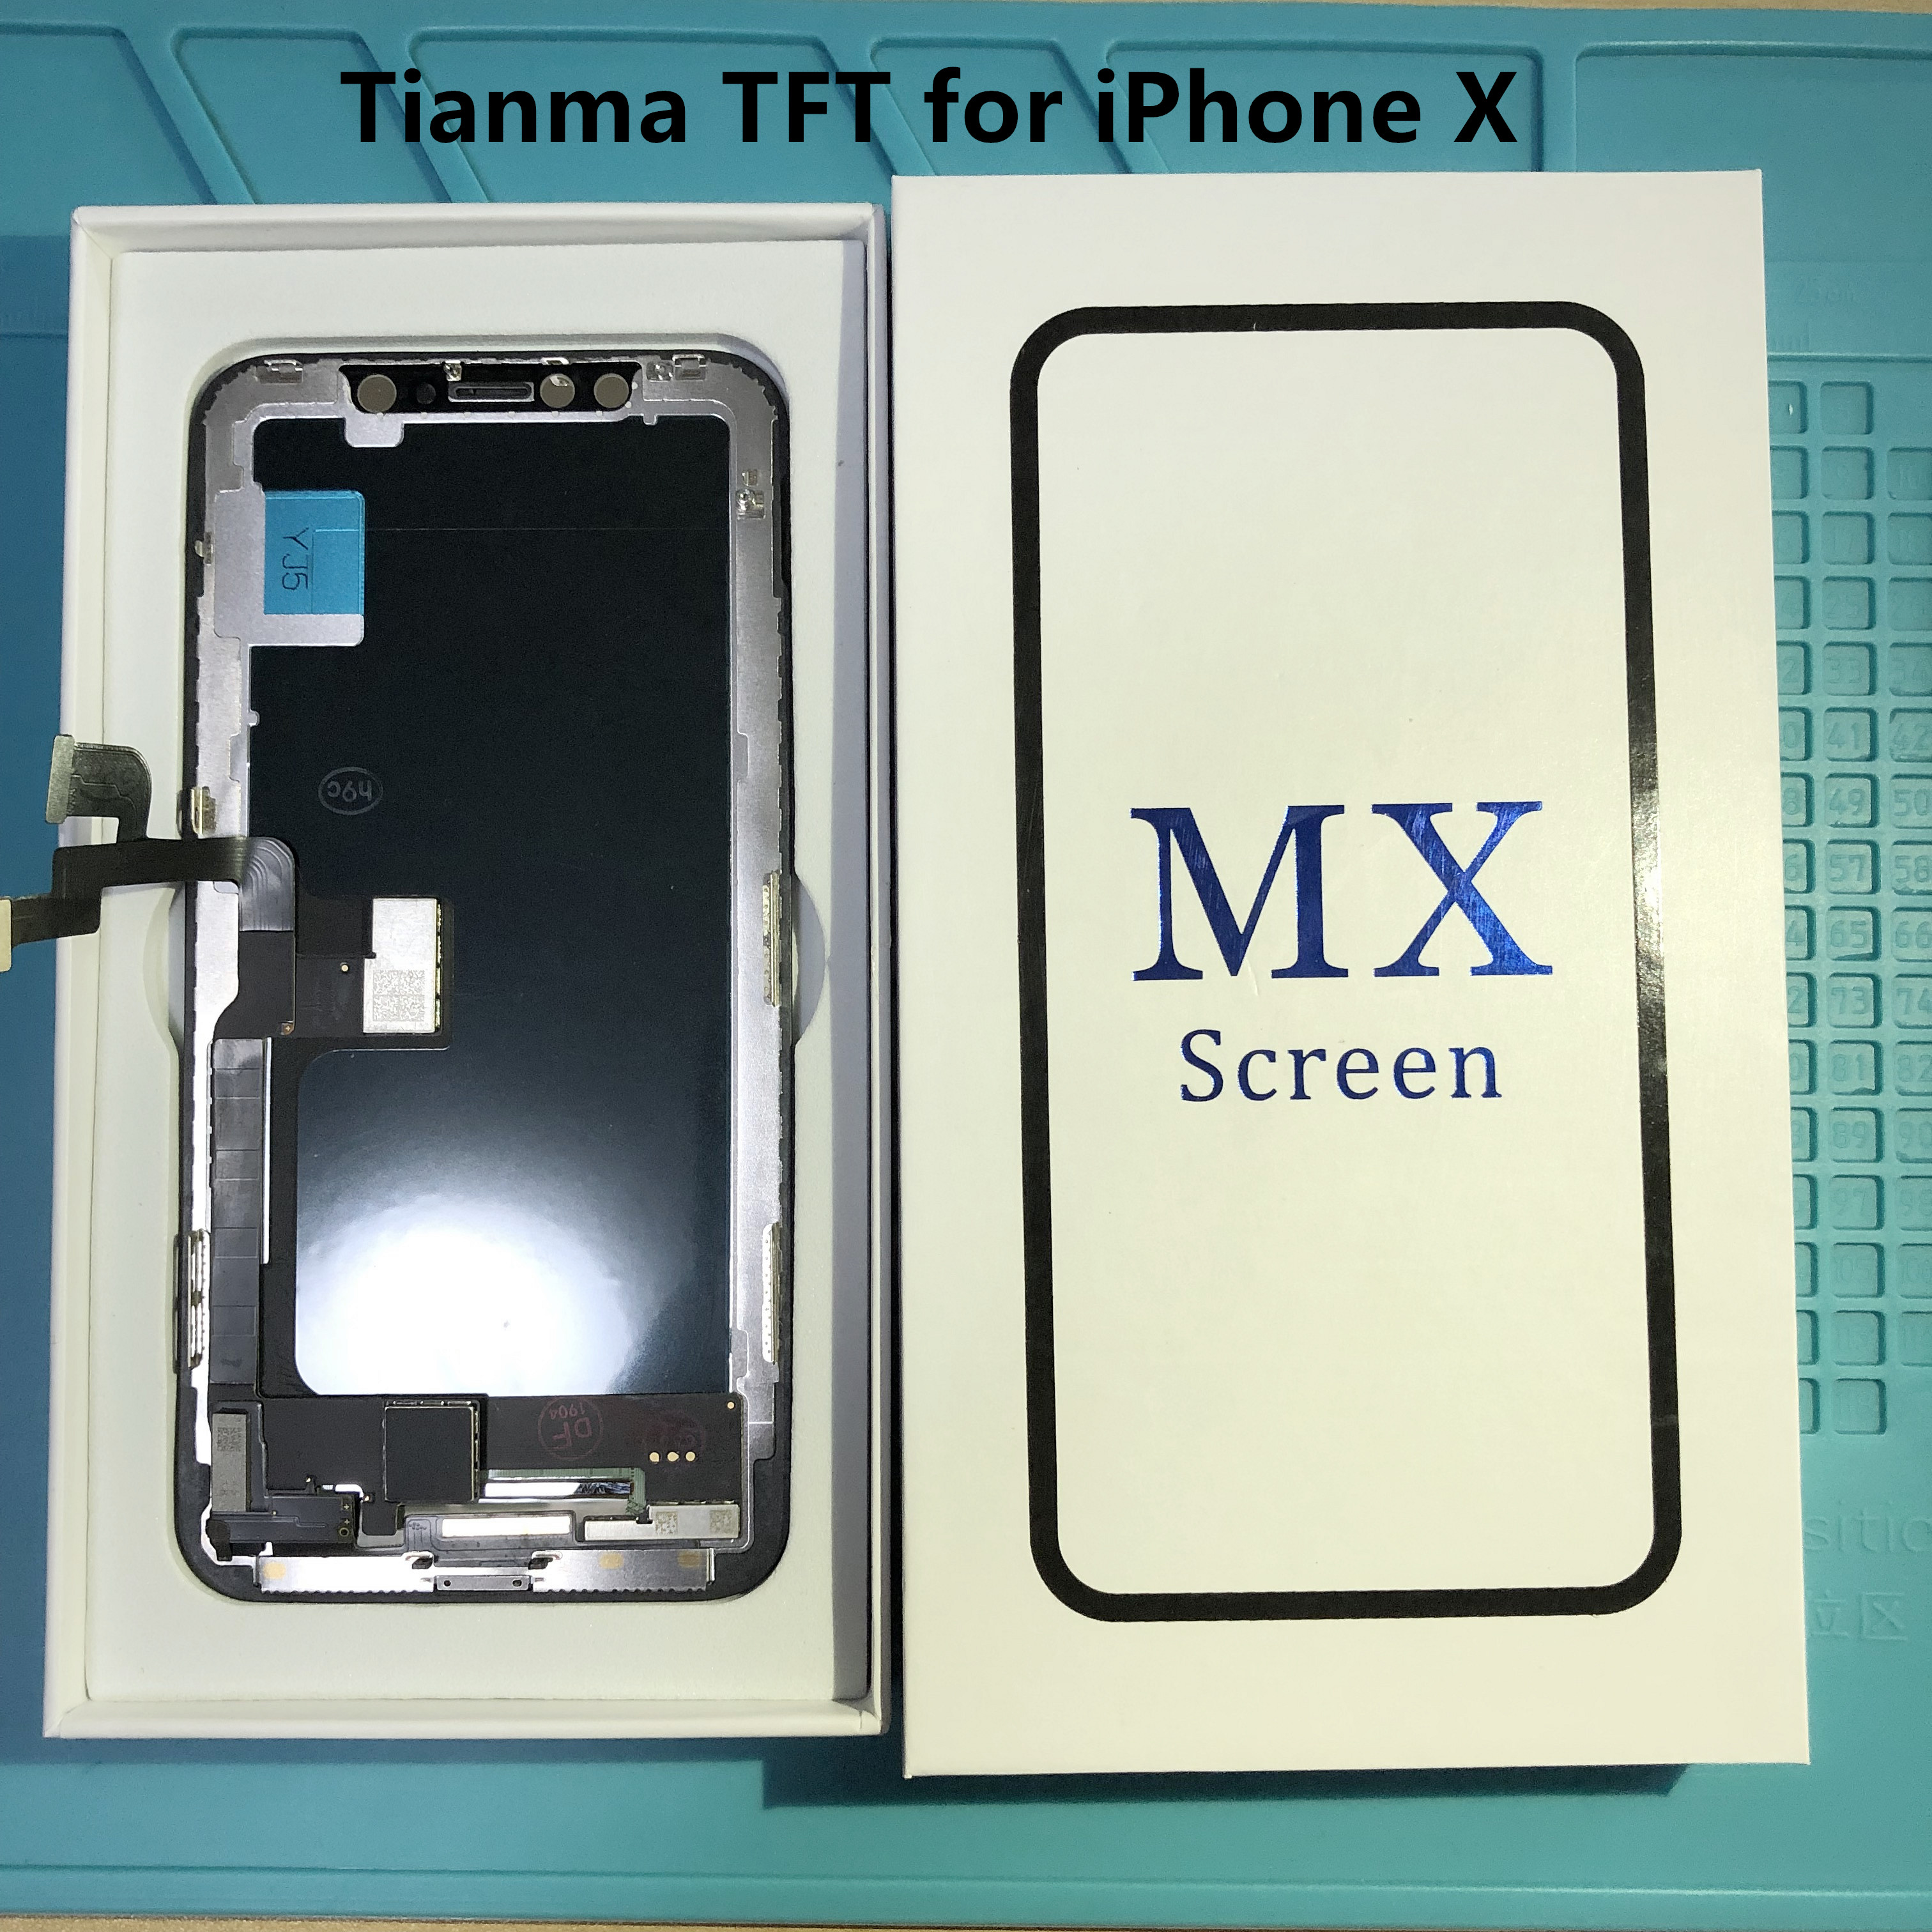 AAA+ Tianma Display for iPhone X Display and Digitizer Touch Screen Assembly with 3D Touch + Frame for iPhone X Full LCD DisplayAAA+ Tianma Display for iPhone X Display and Digitizer Touch Screen Assembly with 3D Touch + Frame for iPhone X Full LCD Display